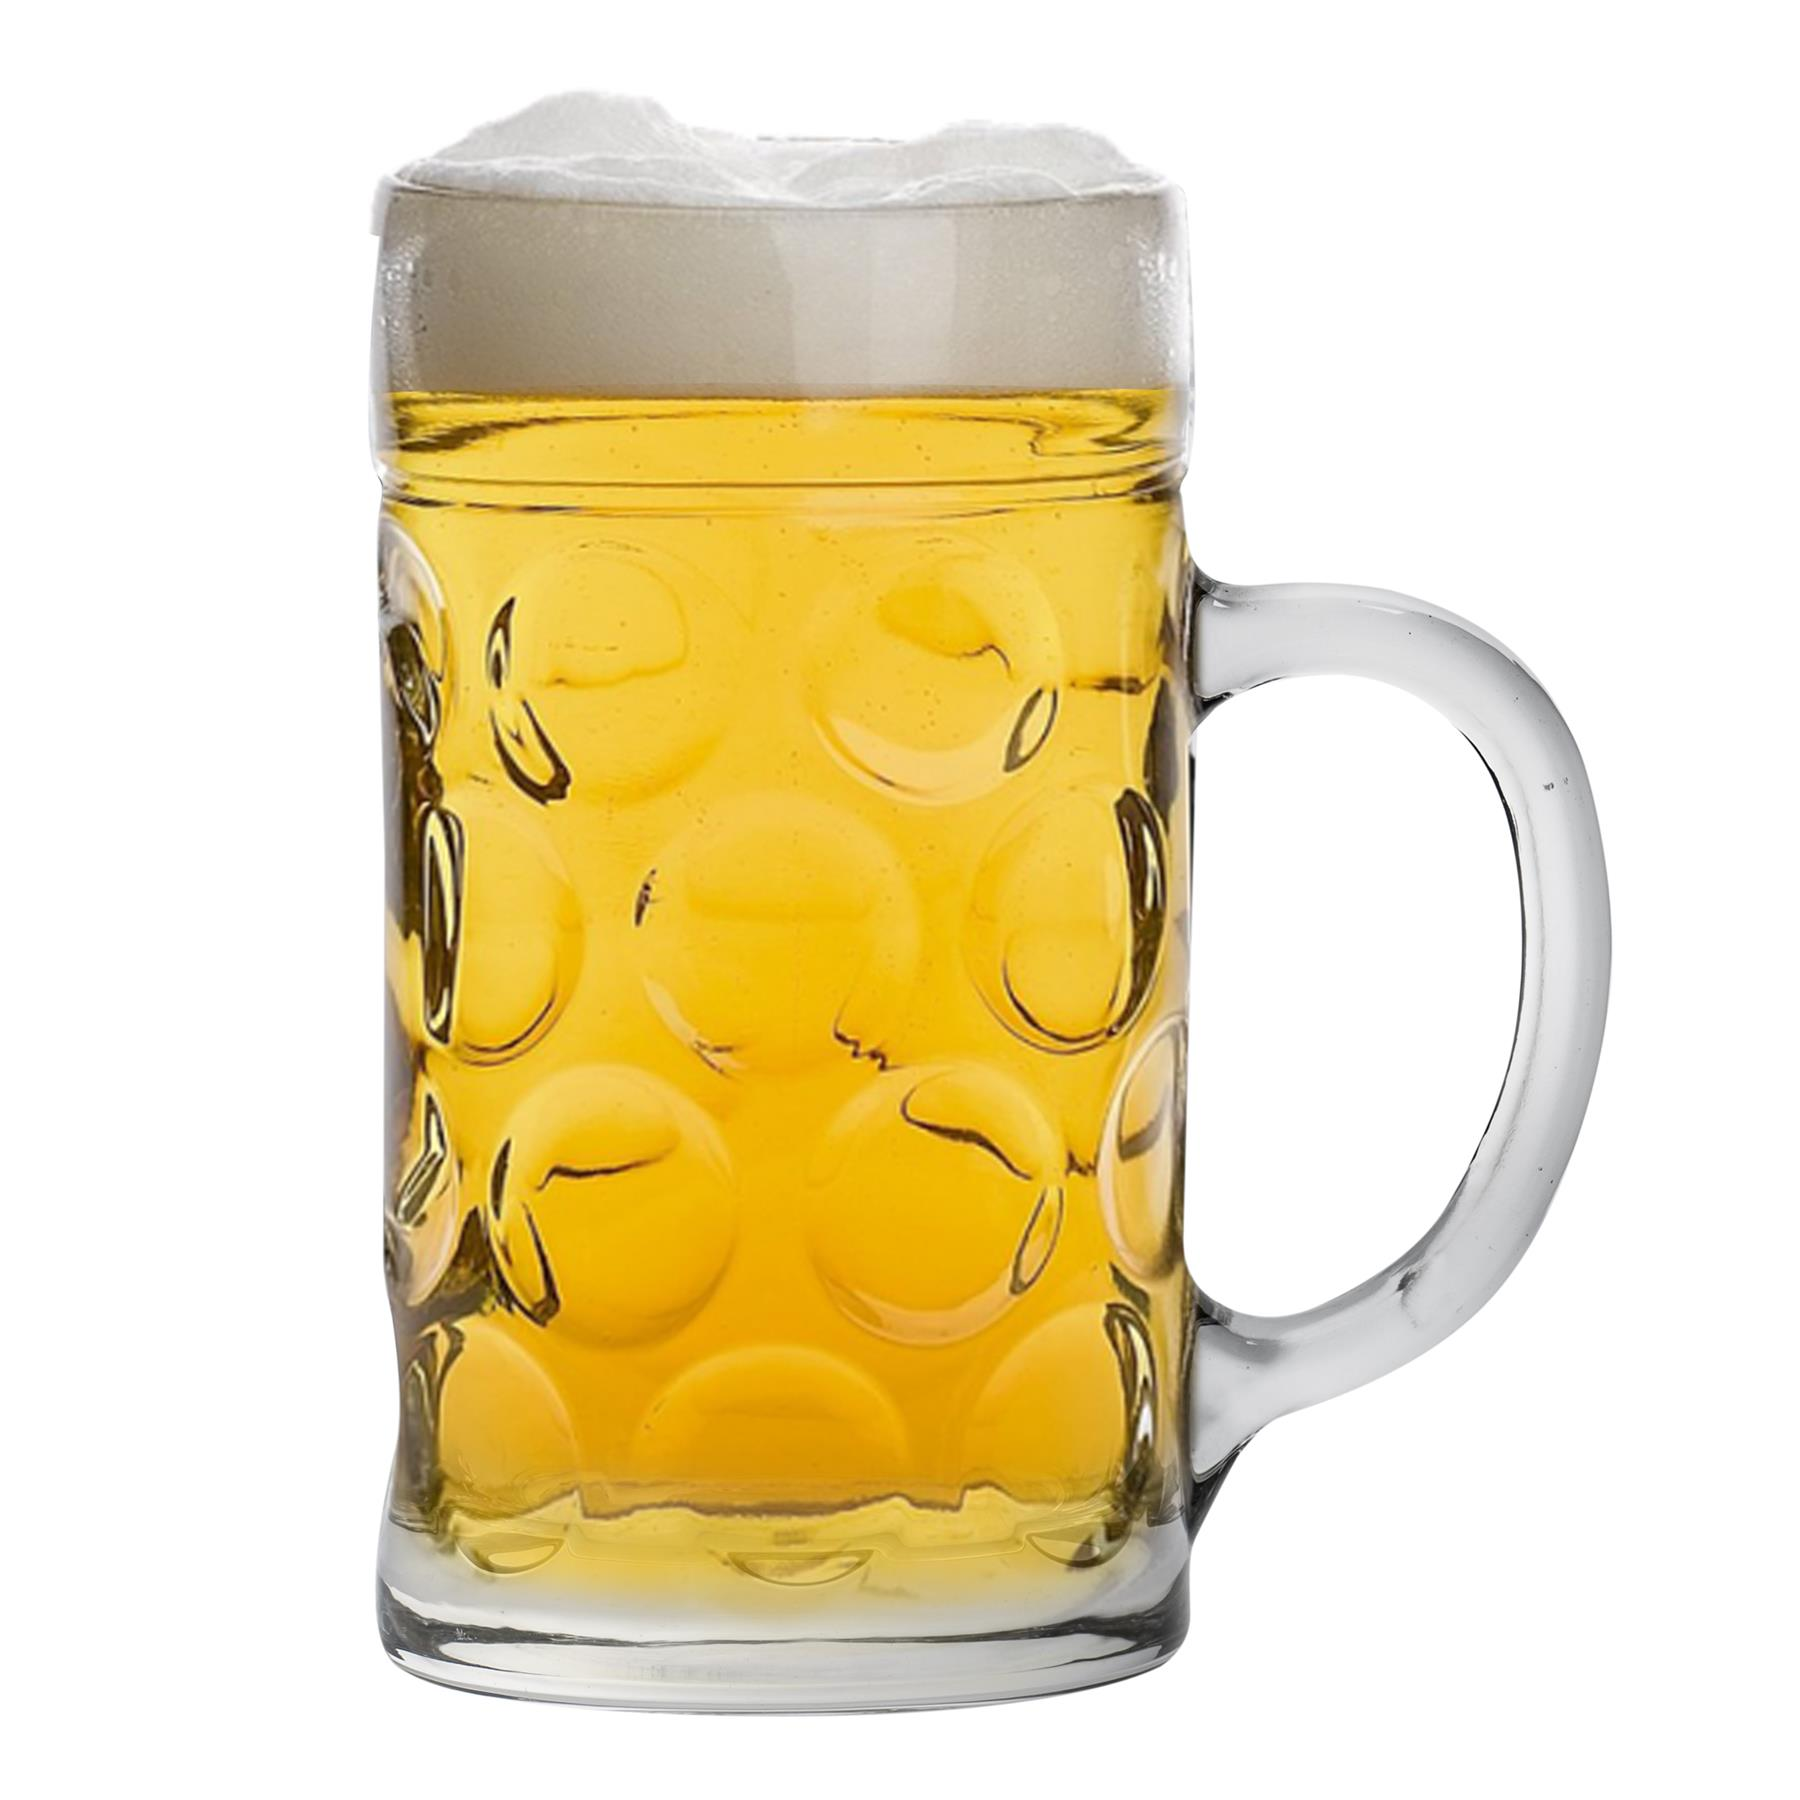 Glass German Beer Tankard Stein Beer Dimple Glass Gift Boxed 2 Pints 5055415199608 Ebay